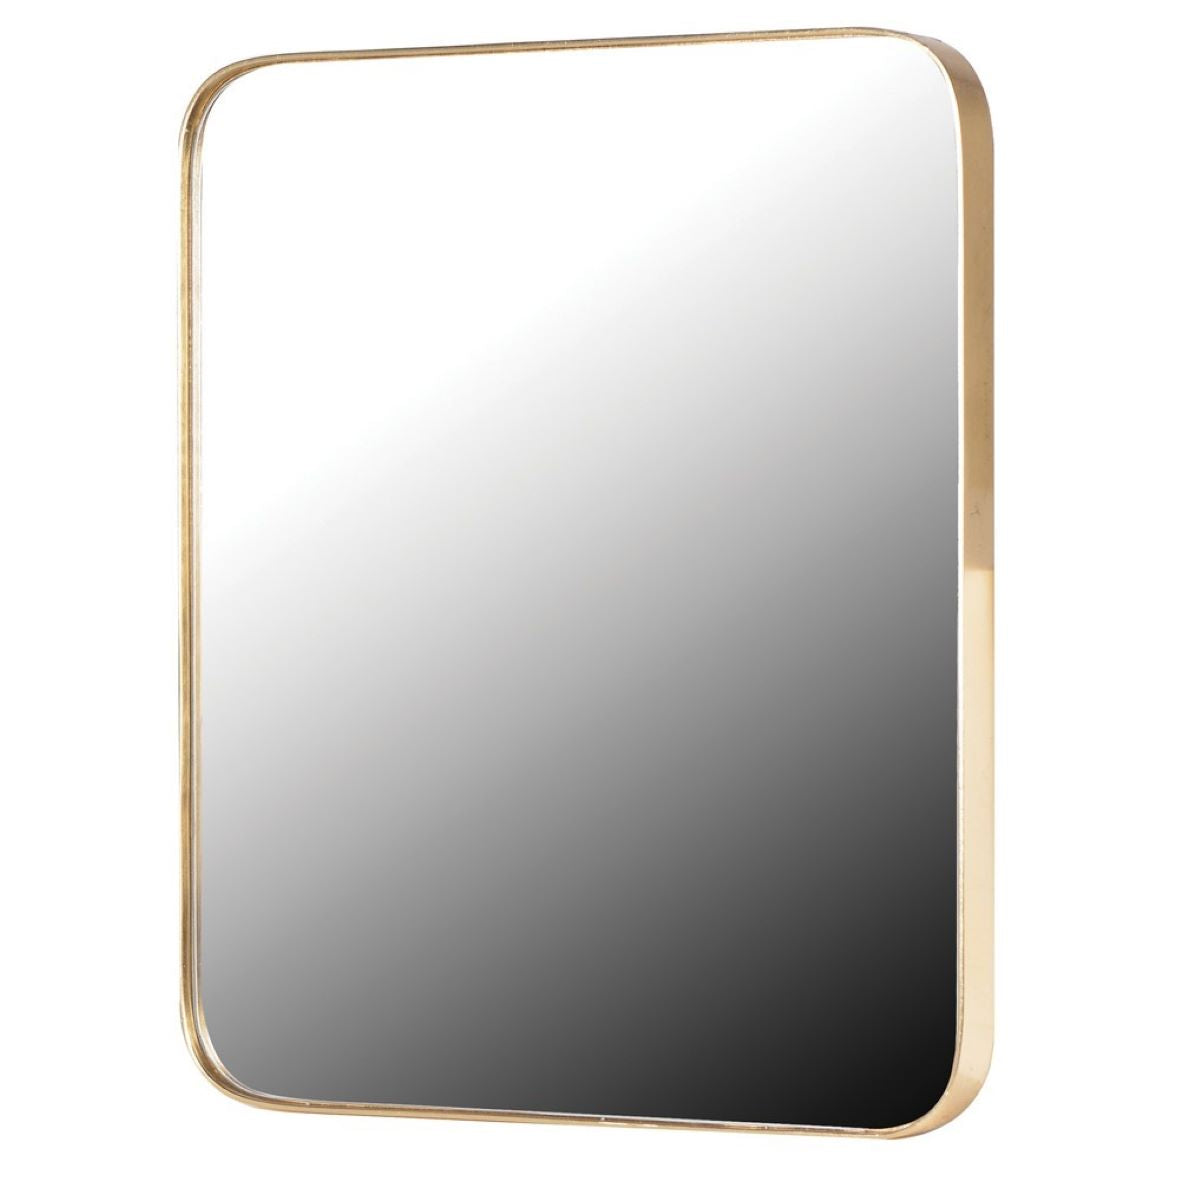 Haygen - Rectangular Mirror Gold Medium